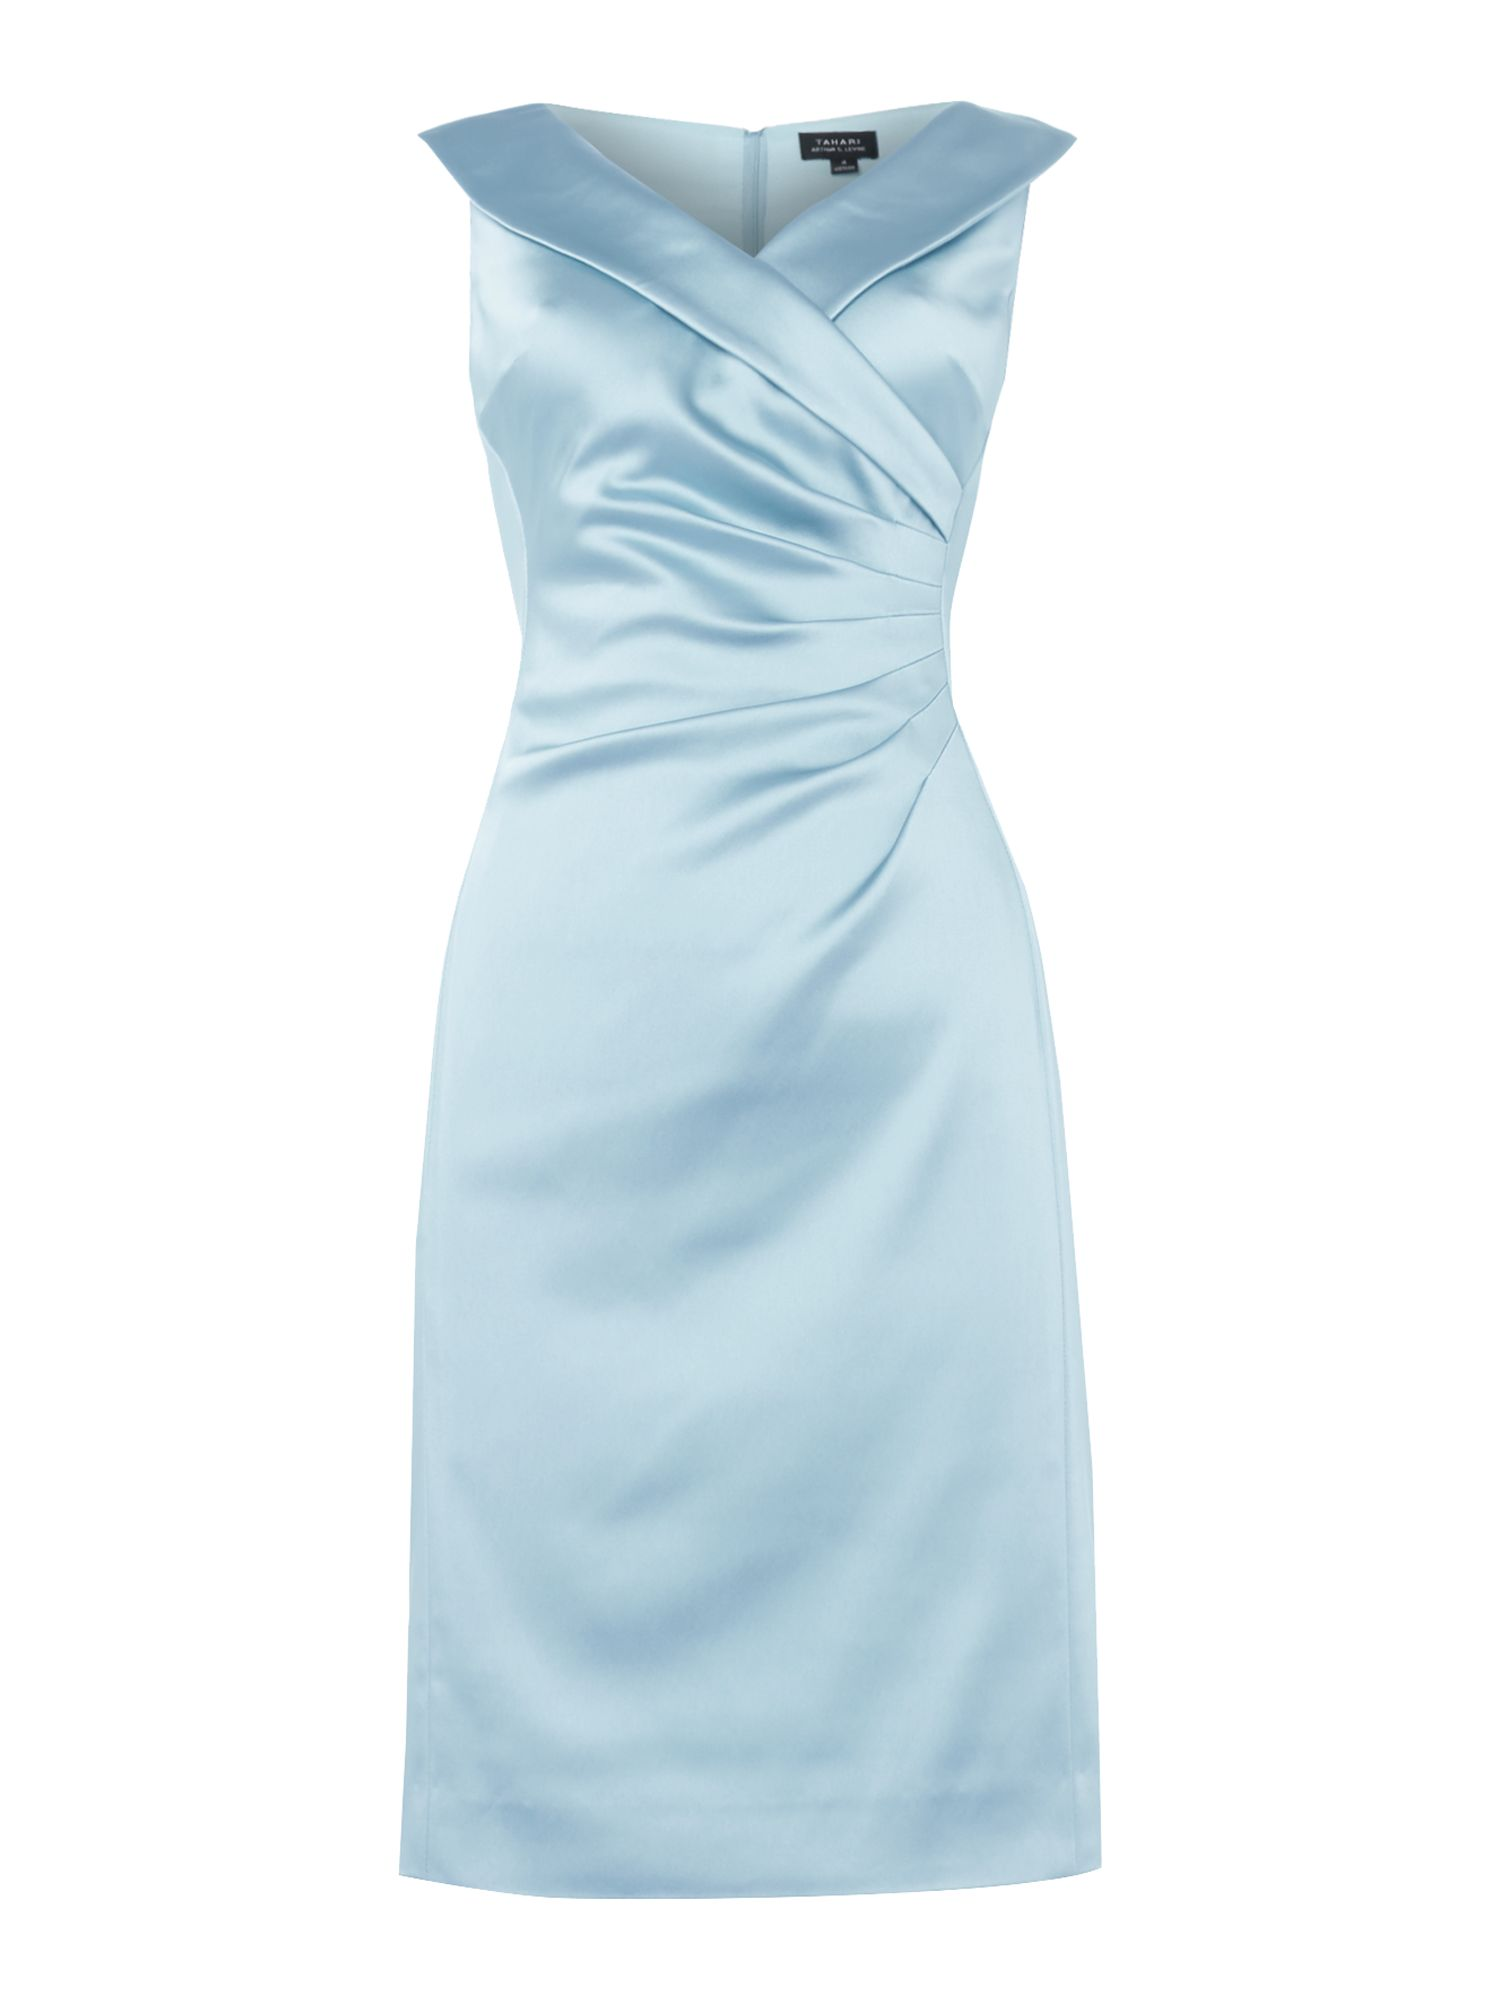 Tahari ASL Ruched Waist Dress Stretch Satin, Aqua